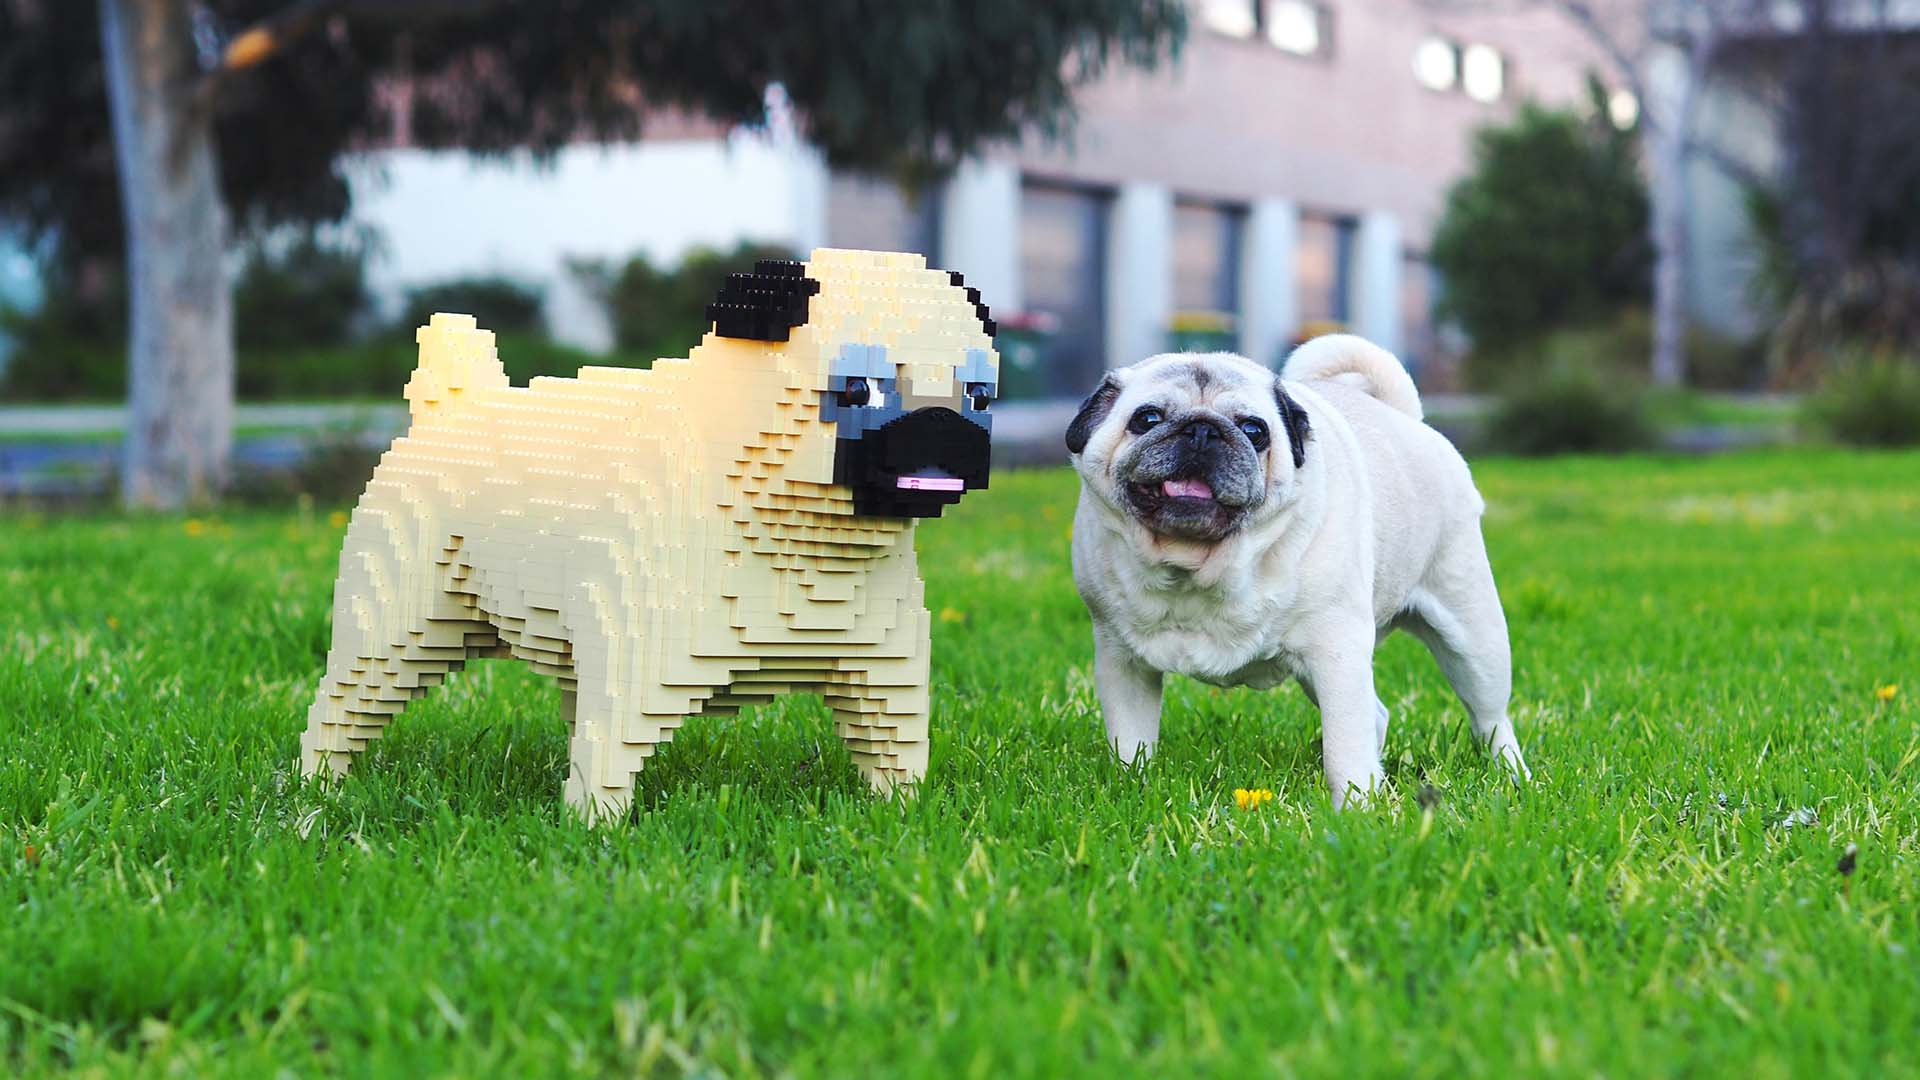 A Life-Size, Custom-Made Lego Version of Your Dog Is a Thing You Could Own